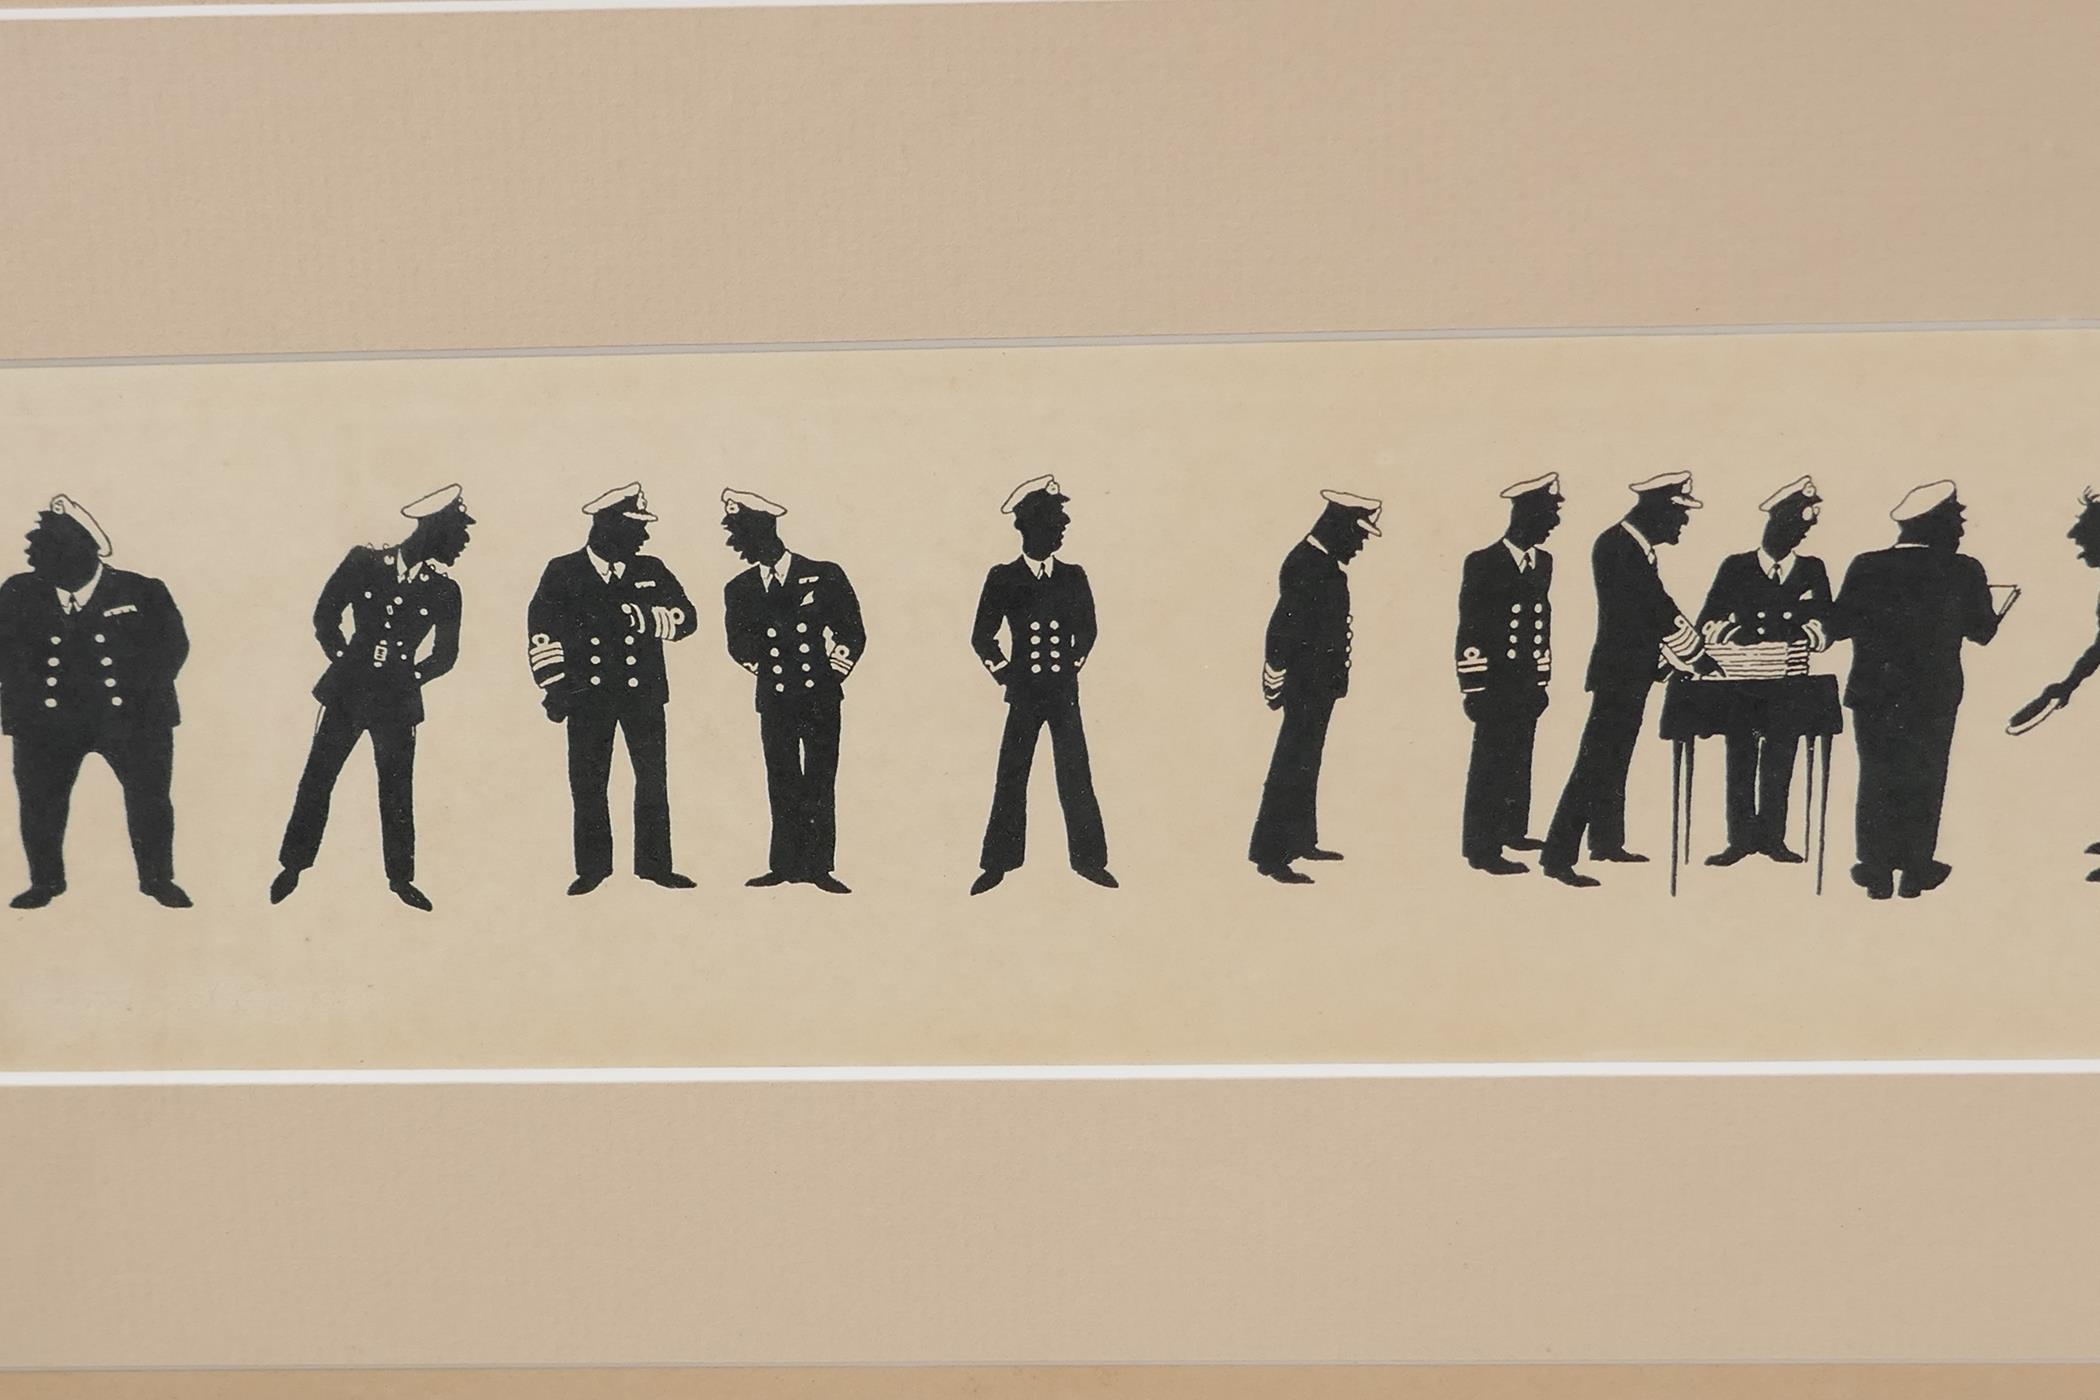 A.M. Hughes, three silhouette prints of naval life, Grog, Defaulters and Sunday Rounds, mounted in a - Image 5 of 9